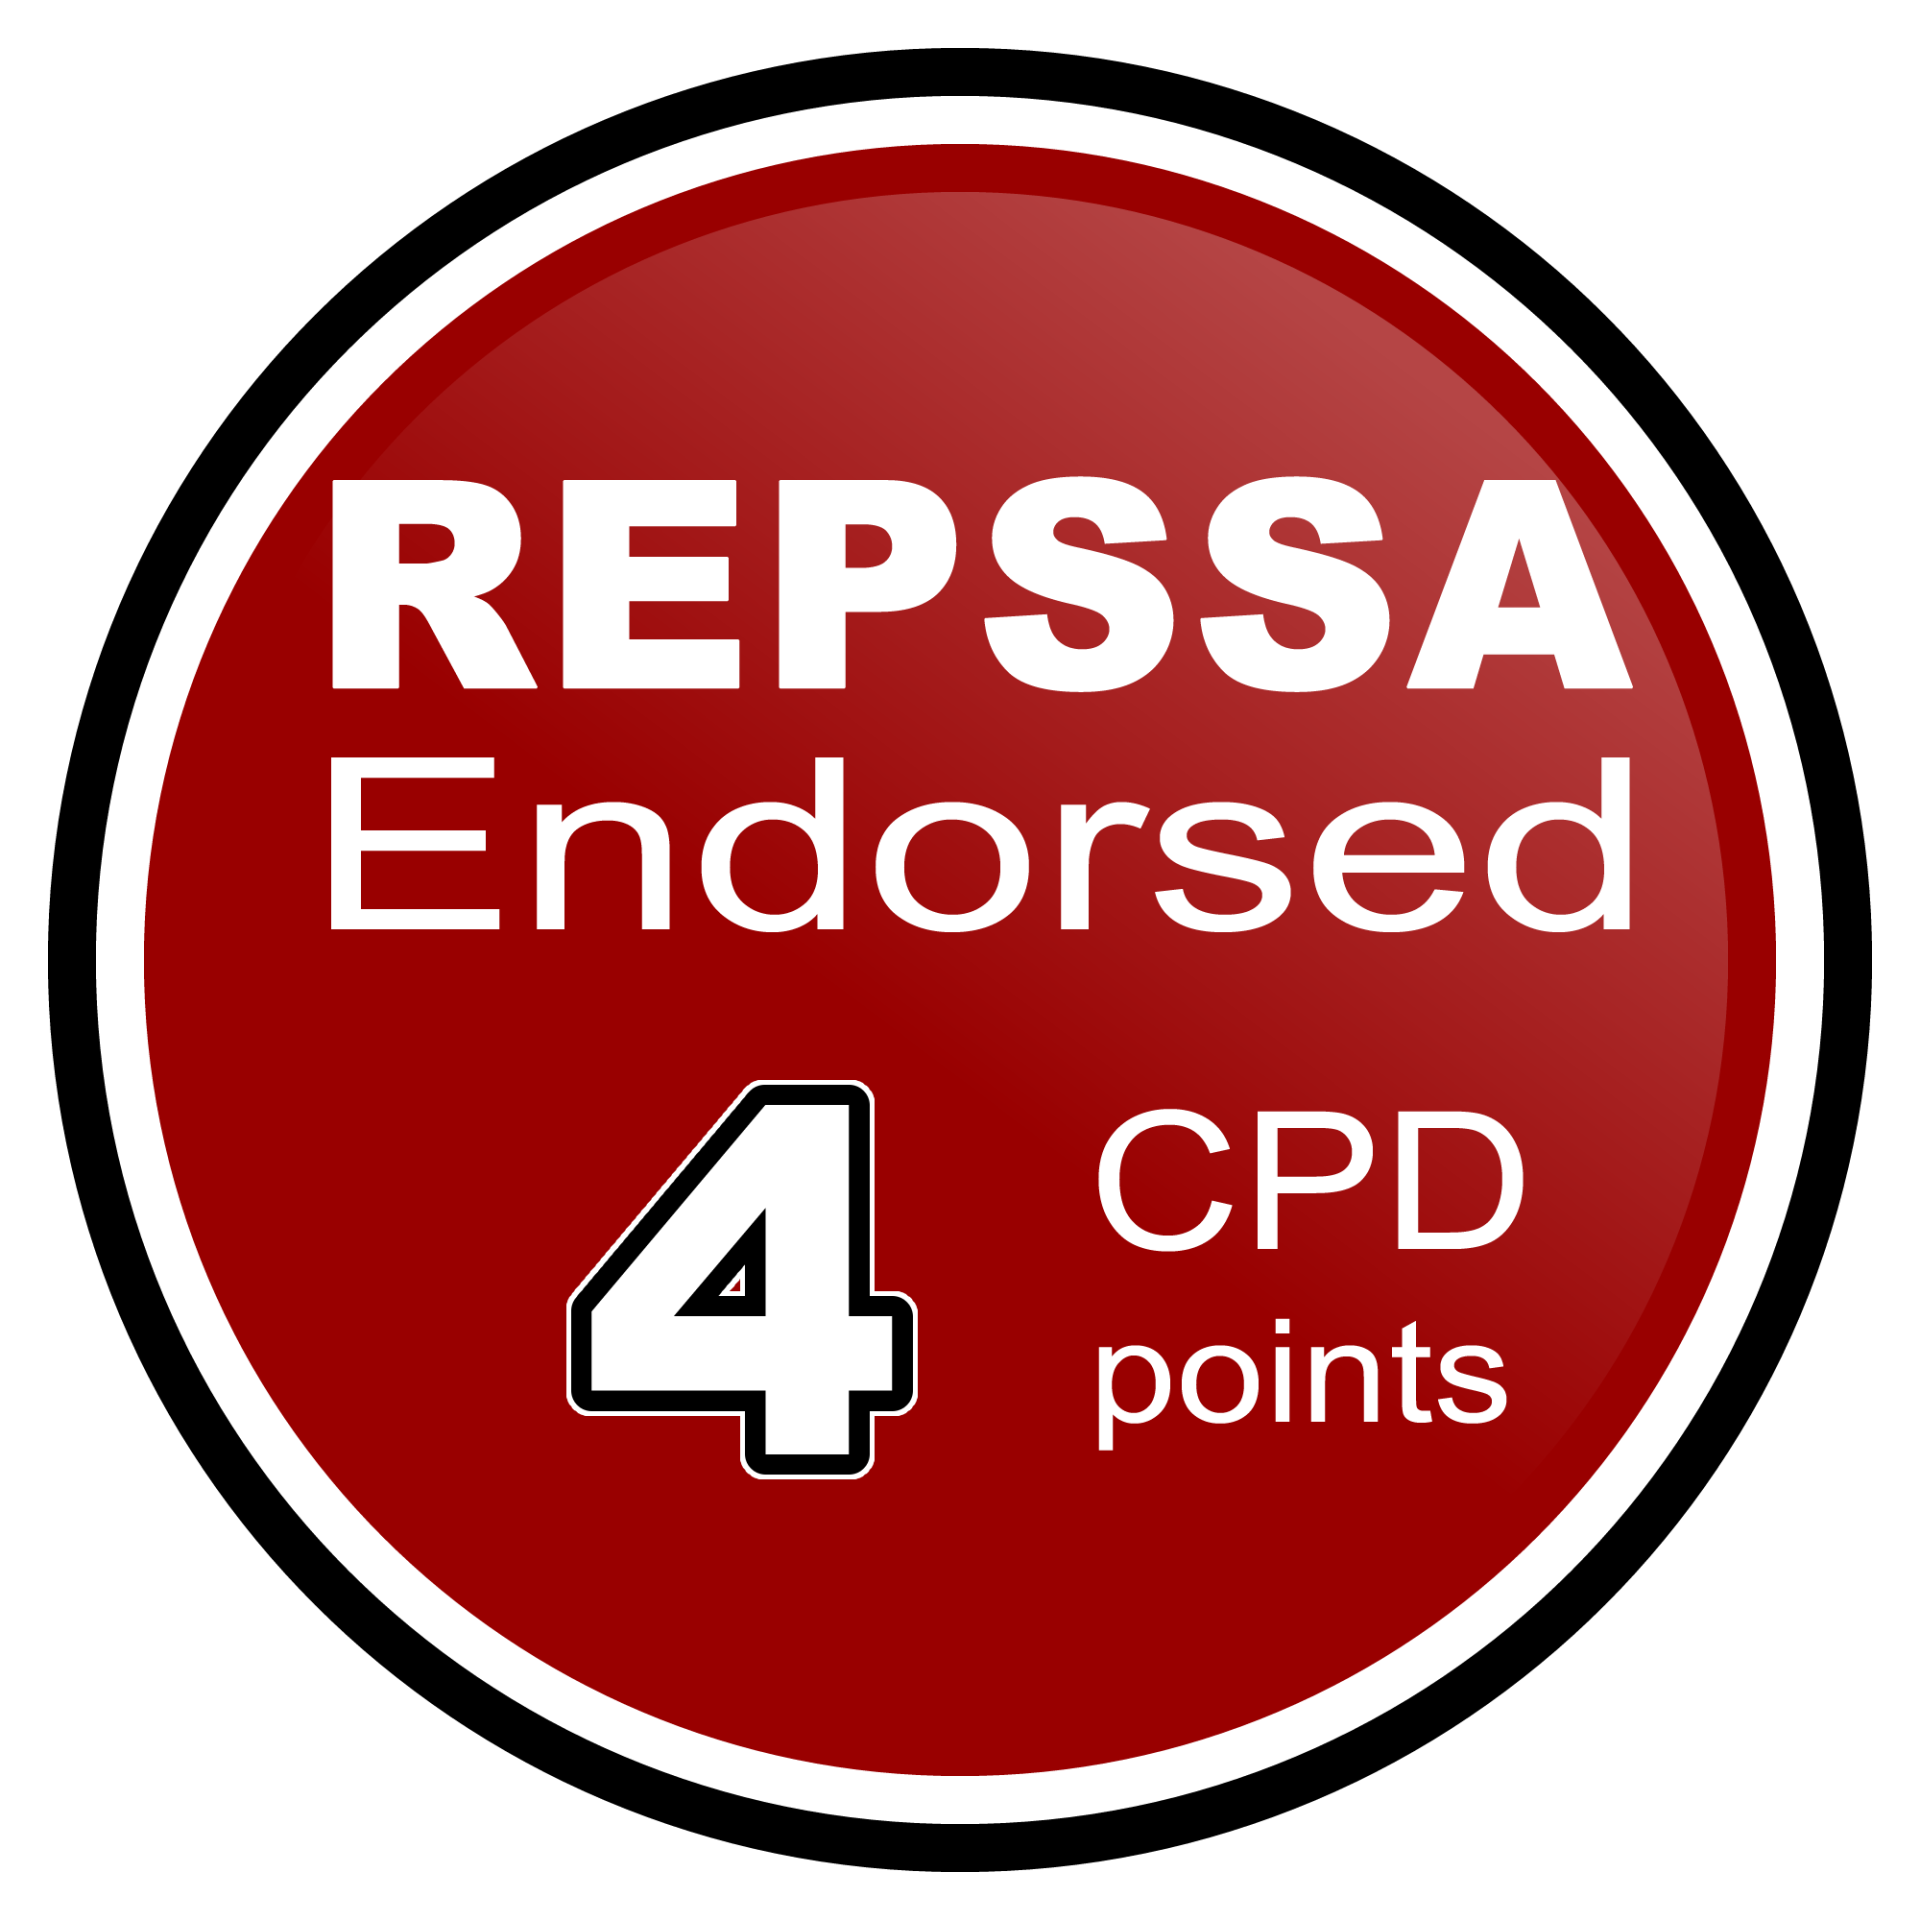 REPSSA 4 CPD points